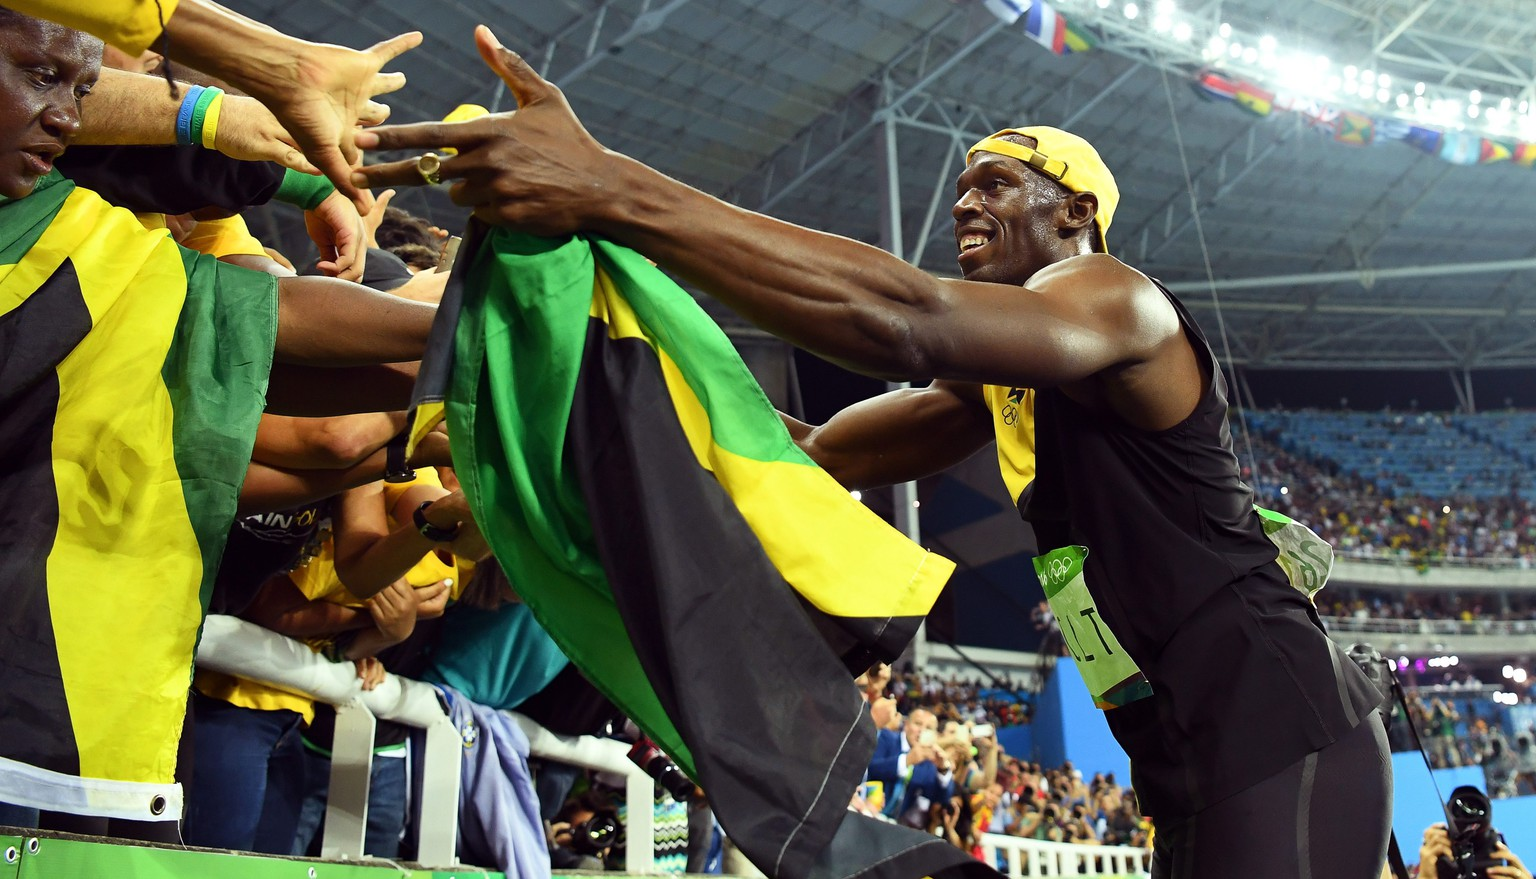 epa05486043 Usain Bolt of Jamaica celebrates with fans after winning the men's 100m final of the Rio 2016 Olympic Games Athletics, Track and Field events at the Olympic Stadium in Rio de Janeiro, Brazil, 14 August 2016.  EPA/BERND THISSEN